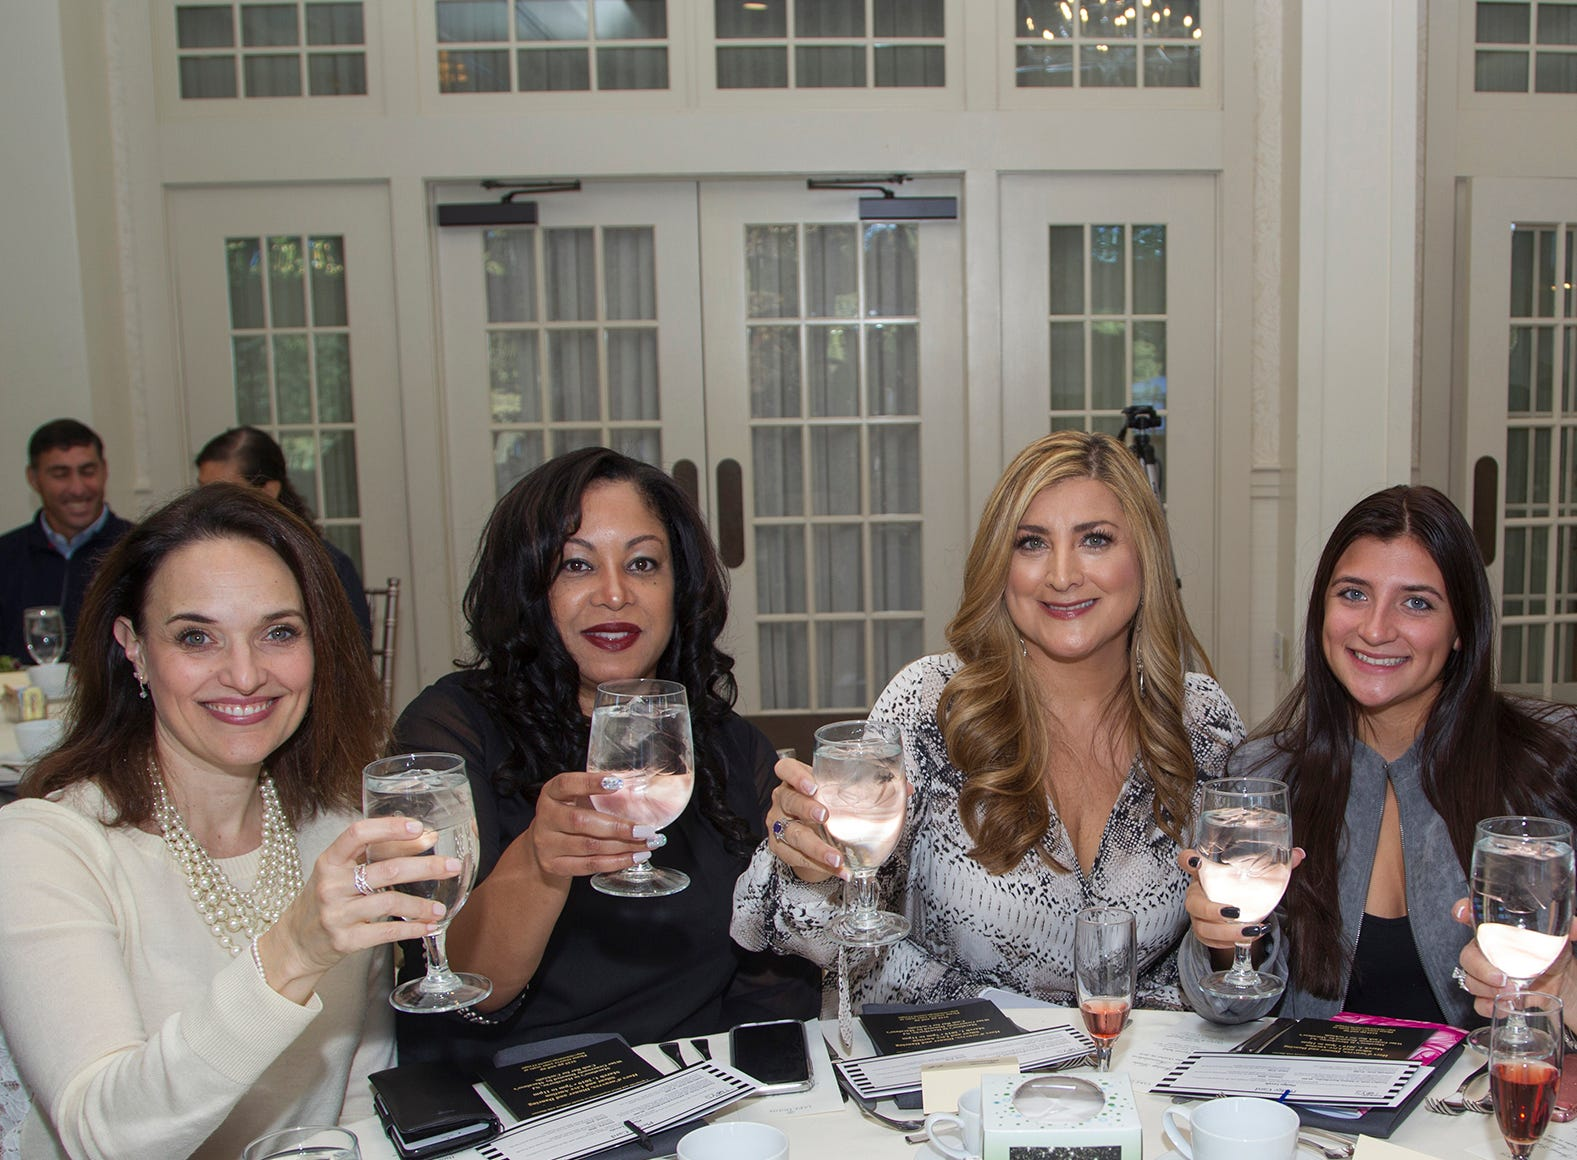 Sarah Walton, Marlyn Garcia, Antonella Romano, Heather Maniscalco, Lisa Lieber-Wang. Spring Lake Toys Foundation held its 3rd annual fundraising gala luncheon at Indian Trail Club in Franklin Lakes. The luncheon fundraiser raises funds for children with illnesses. 10/18/2018